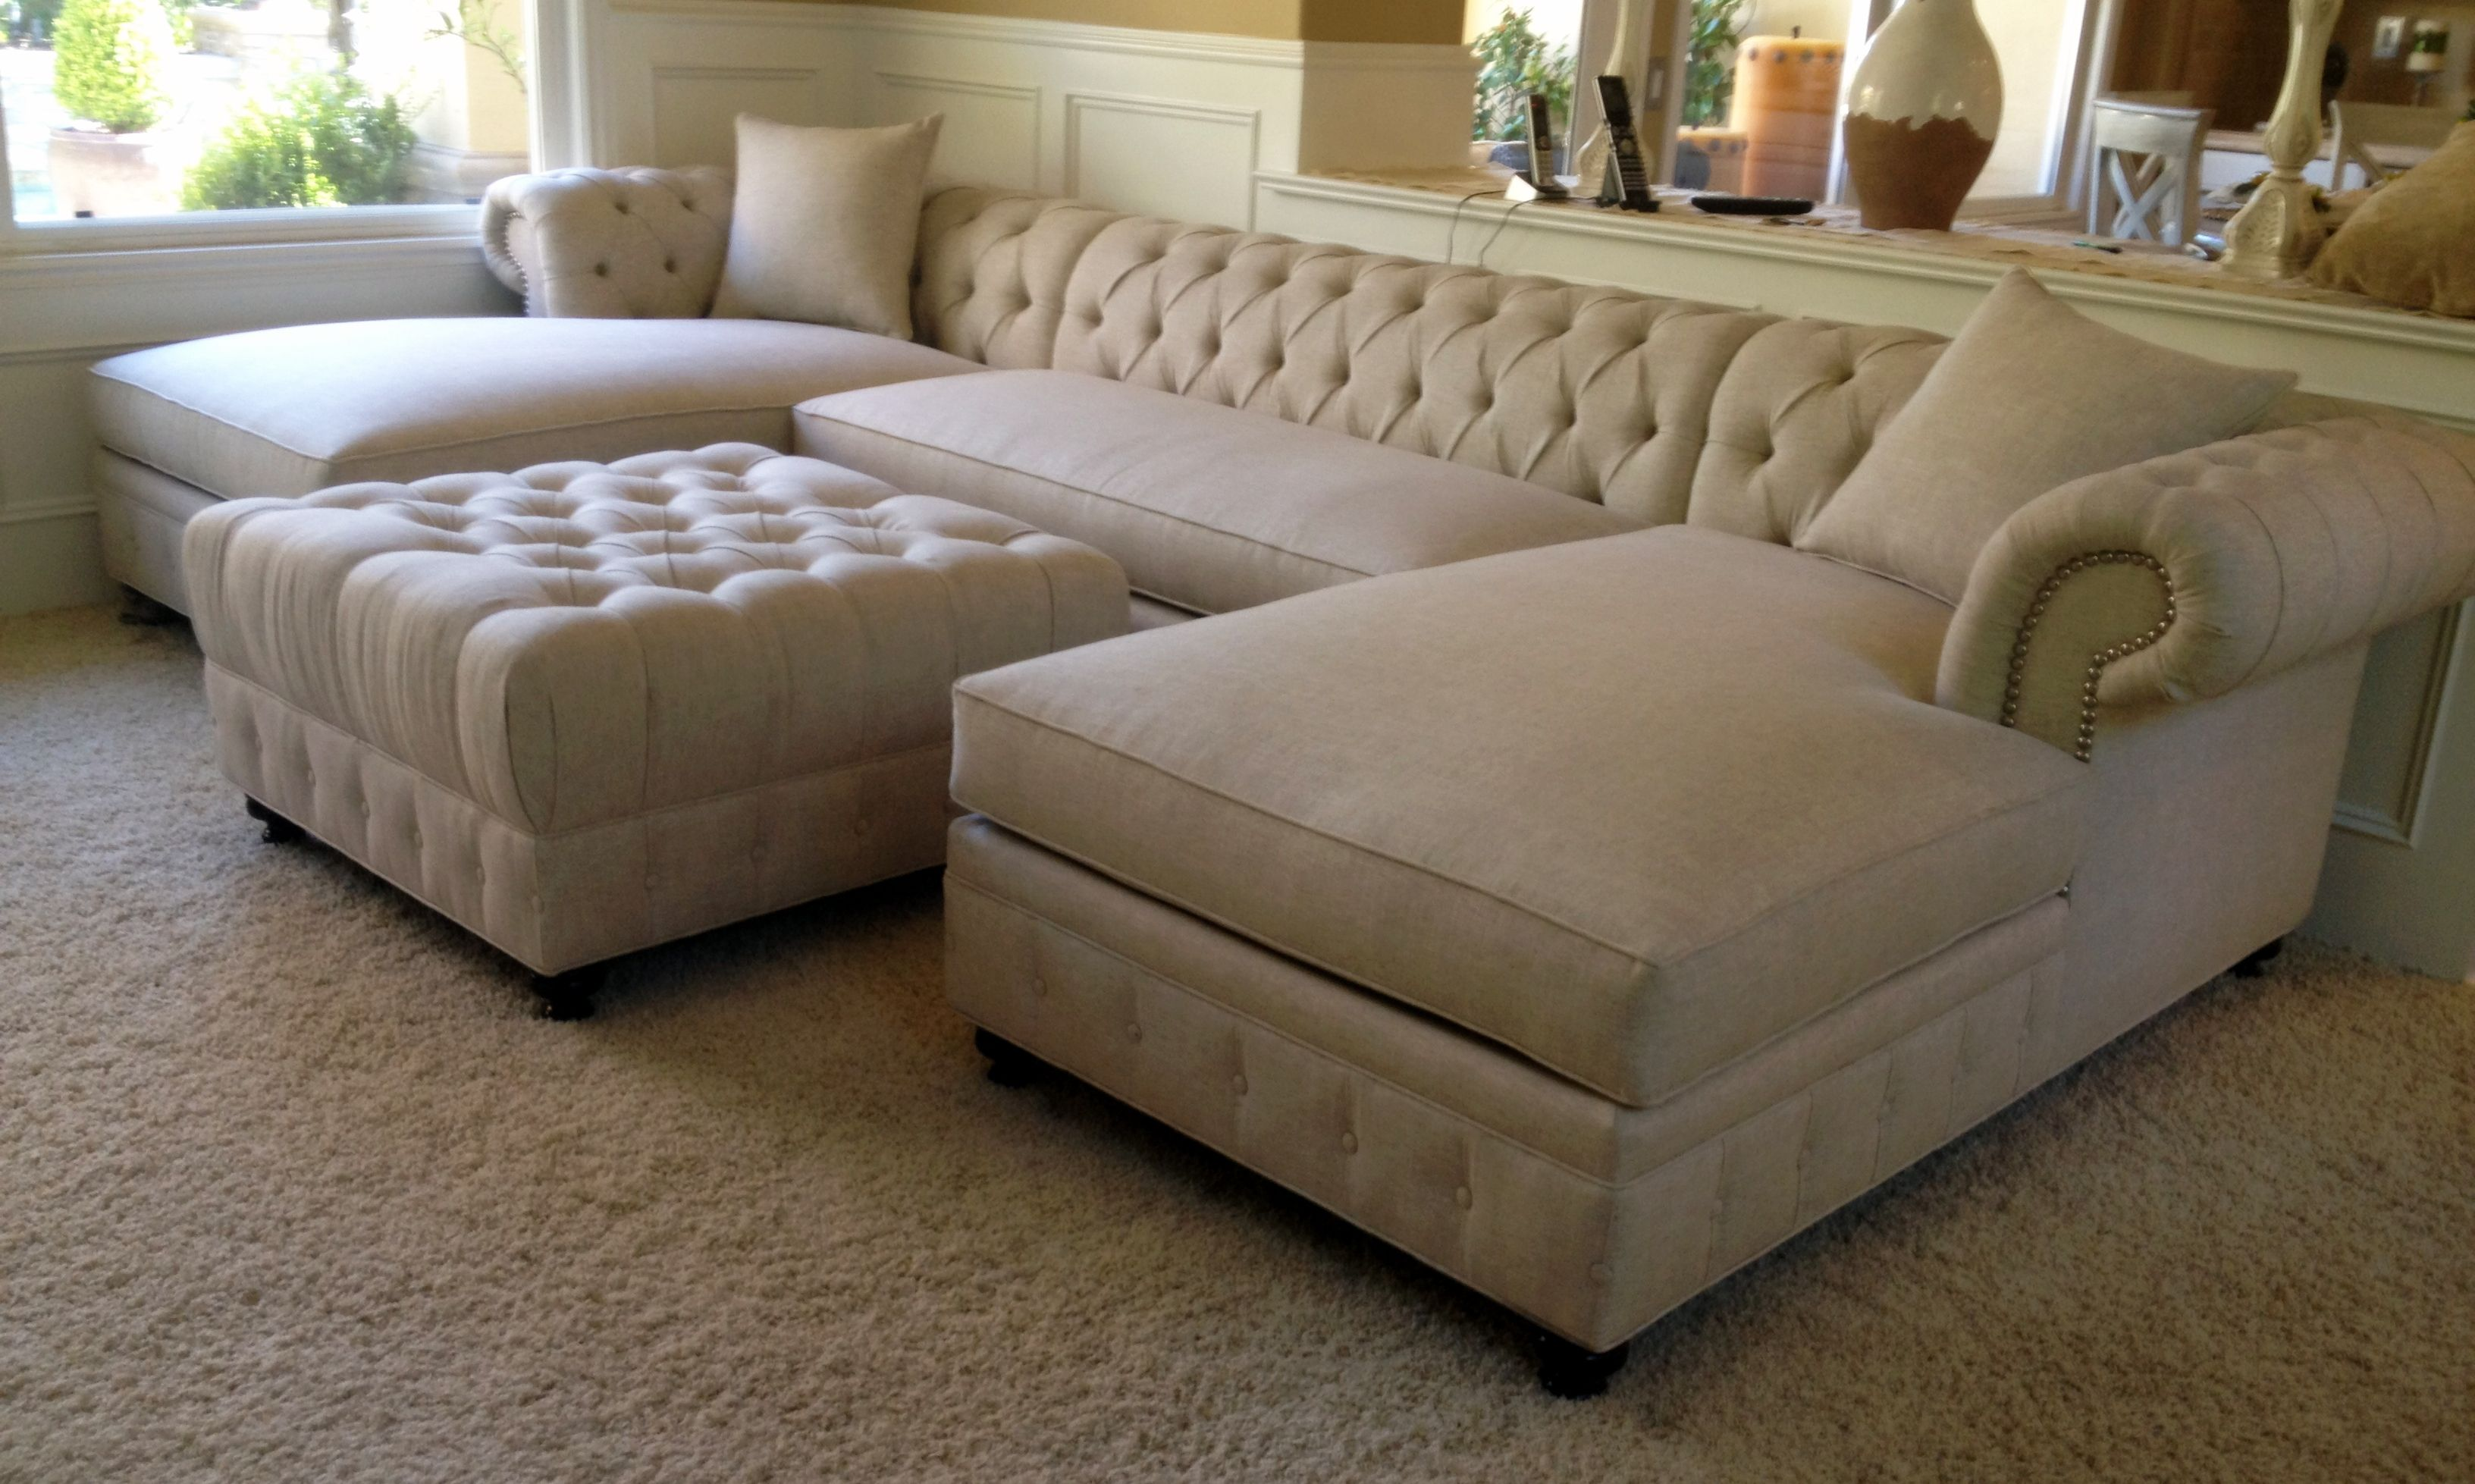 Custom CHESTERFIELD sofa or sectional. Leather or fabric. Ships Nationwide. : chesterfield sofa sectional - Sectionals, Sofas & Couches